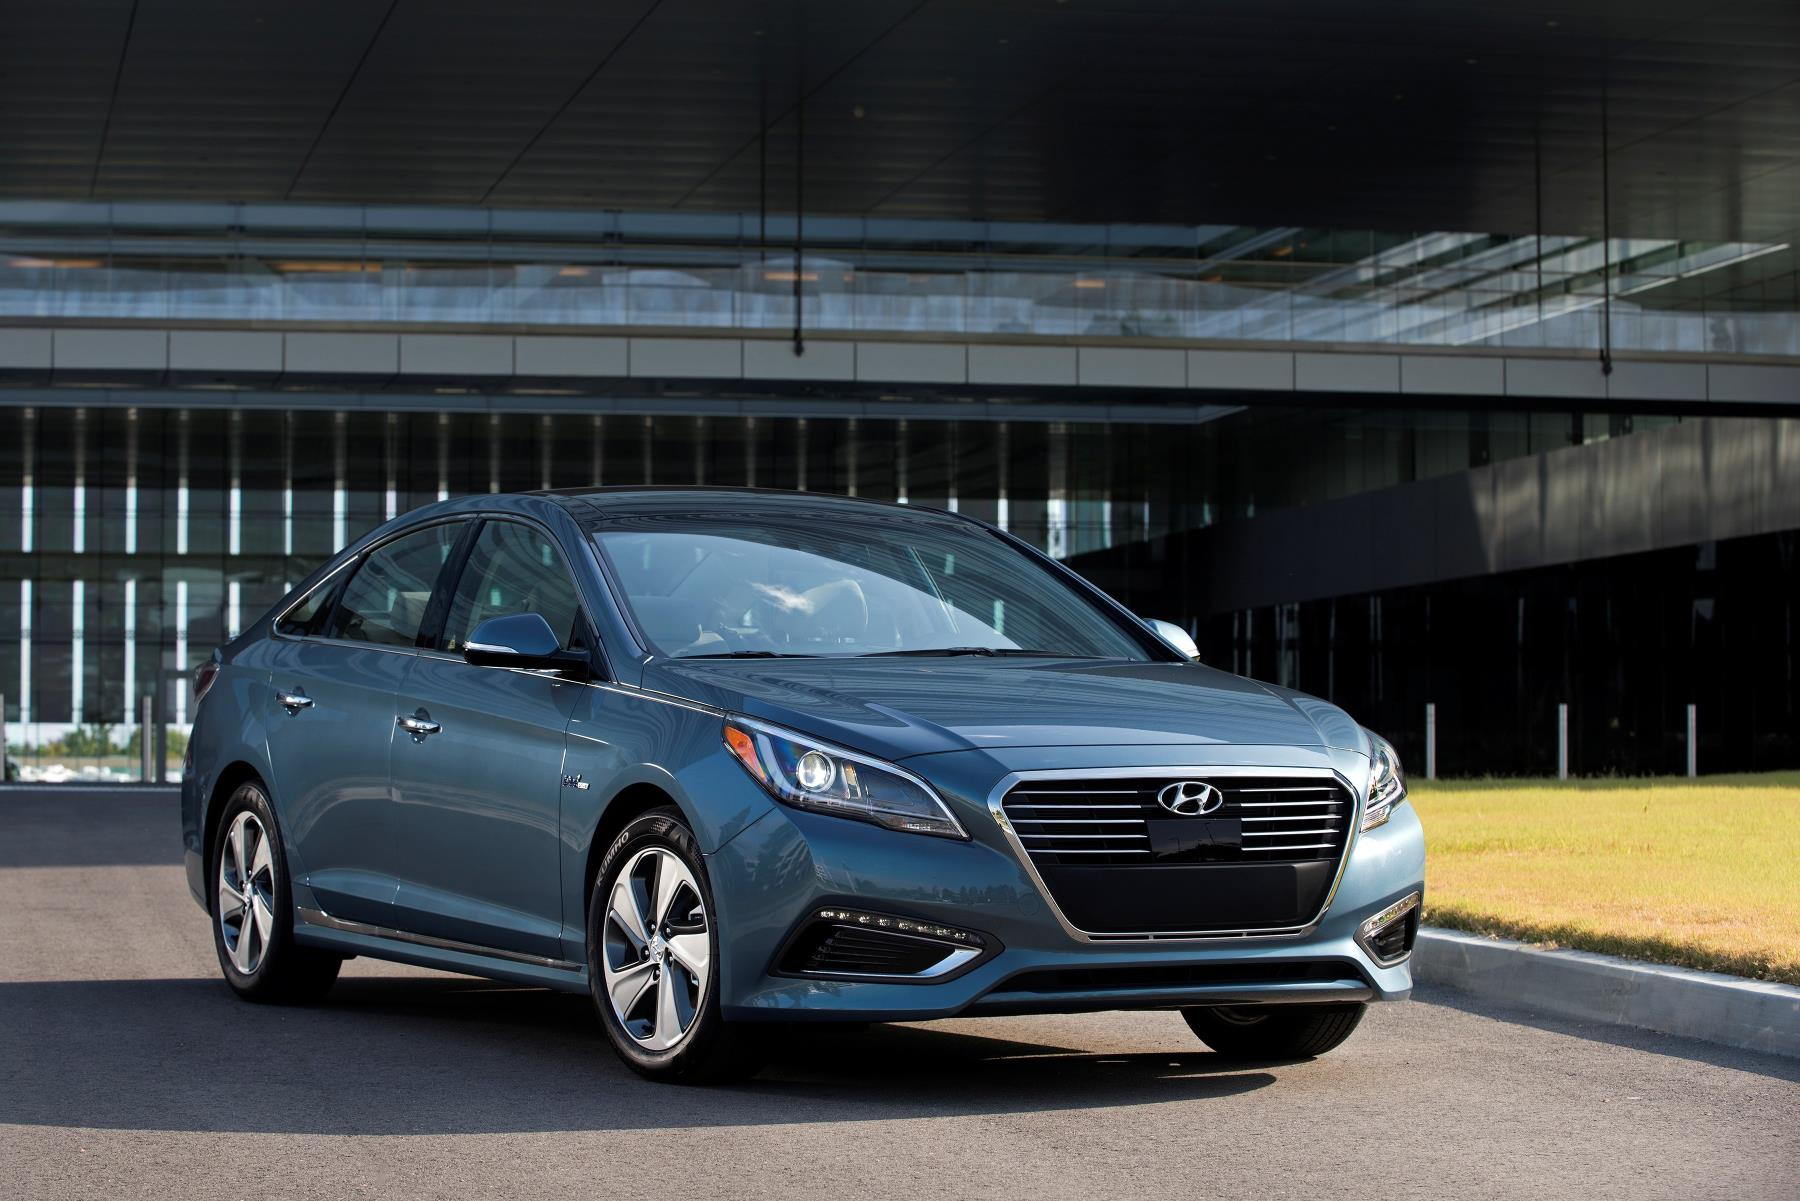 2017 hyundai sonata plug in hybrid offers 27 mile ev range with new colors autoevolution. Black Bedroom Furniture Sets. Home Design Ideas